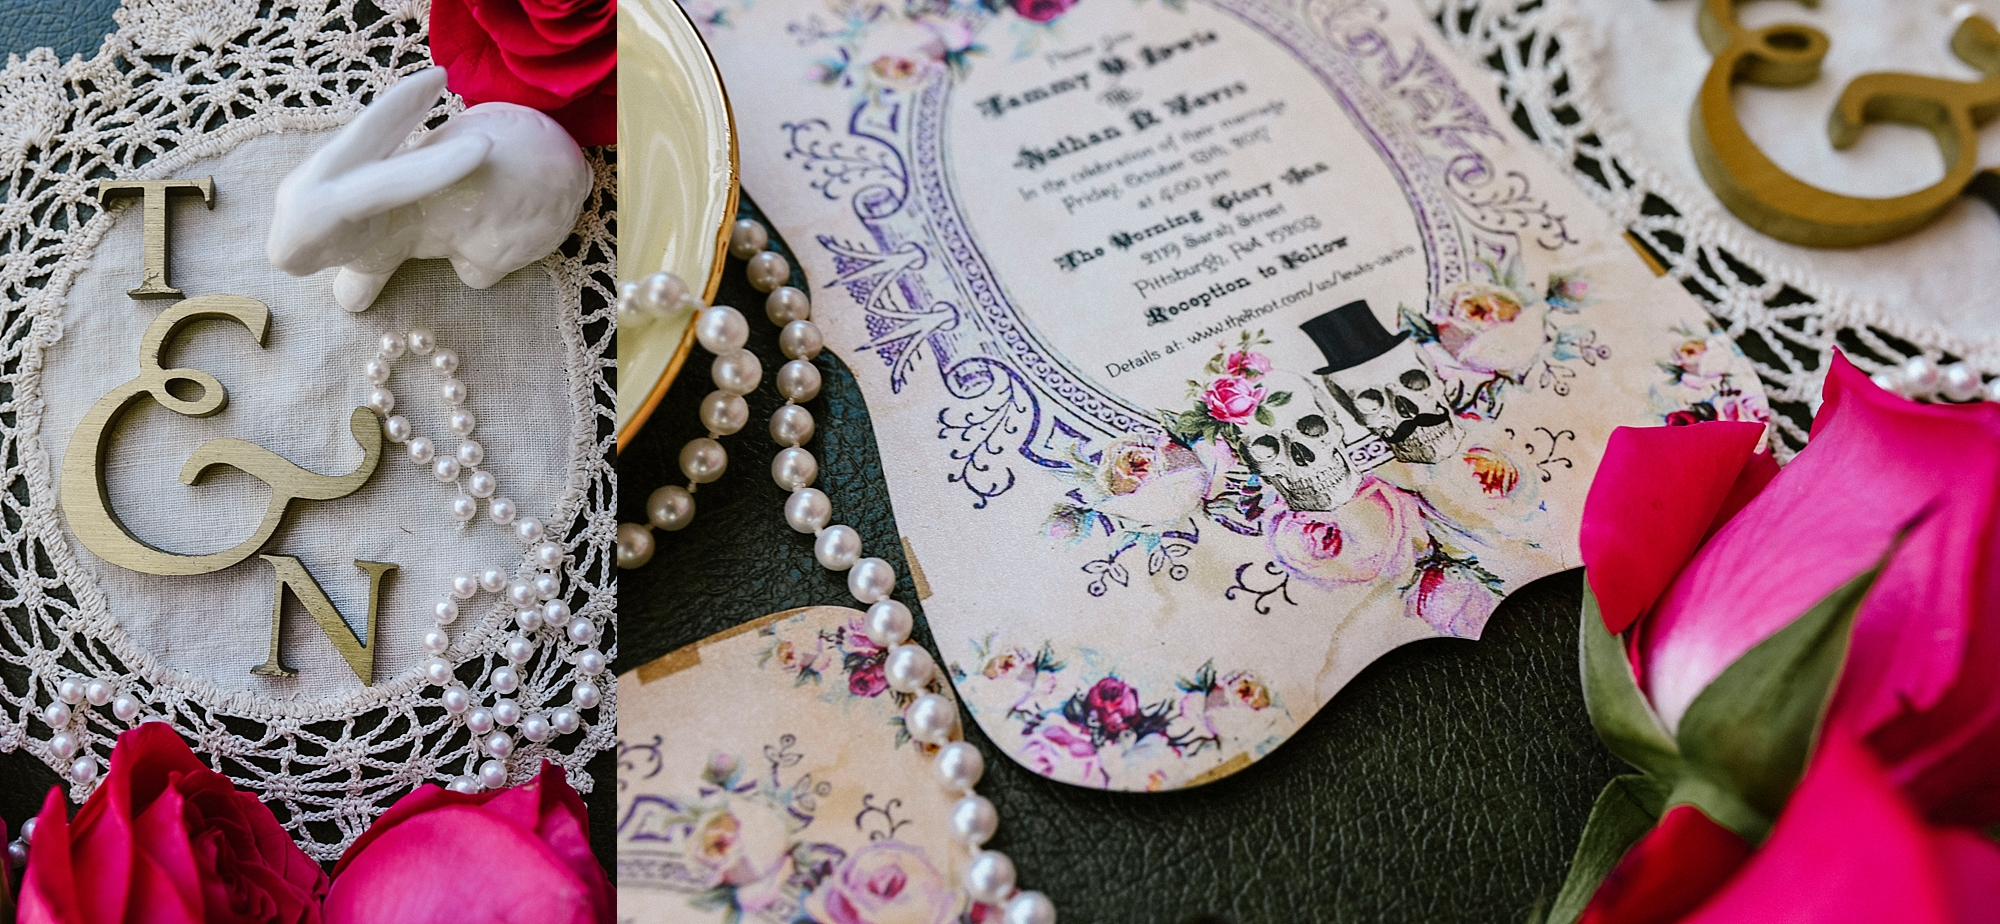 Wedding invitation rabbits skulls